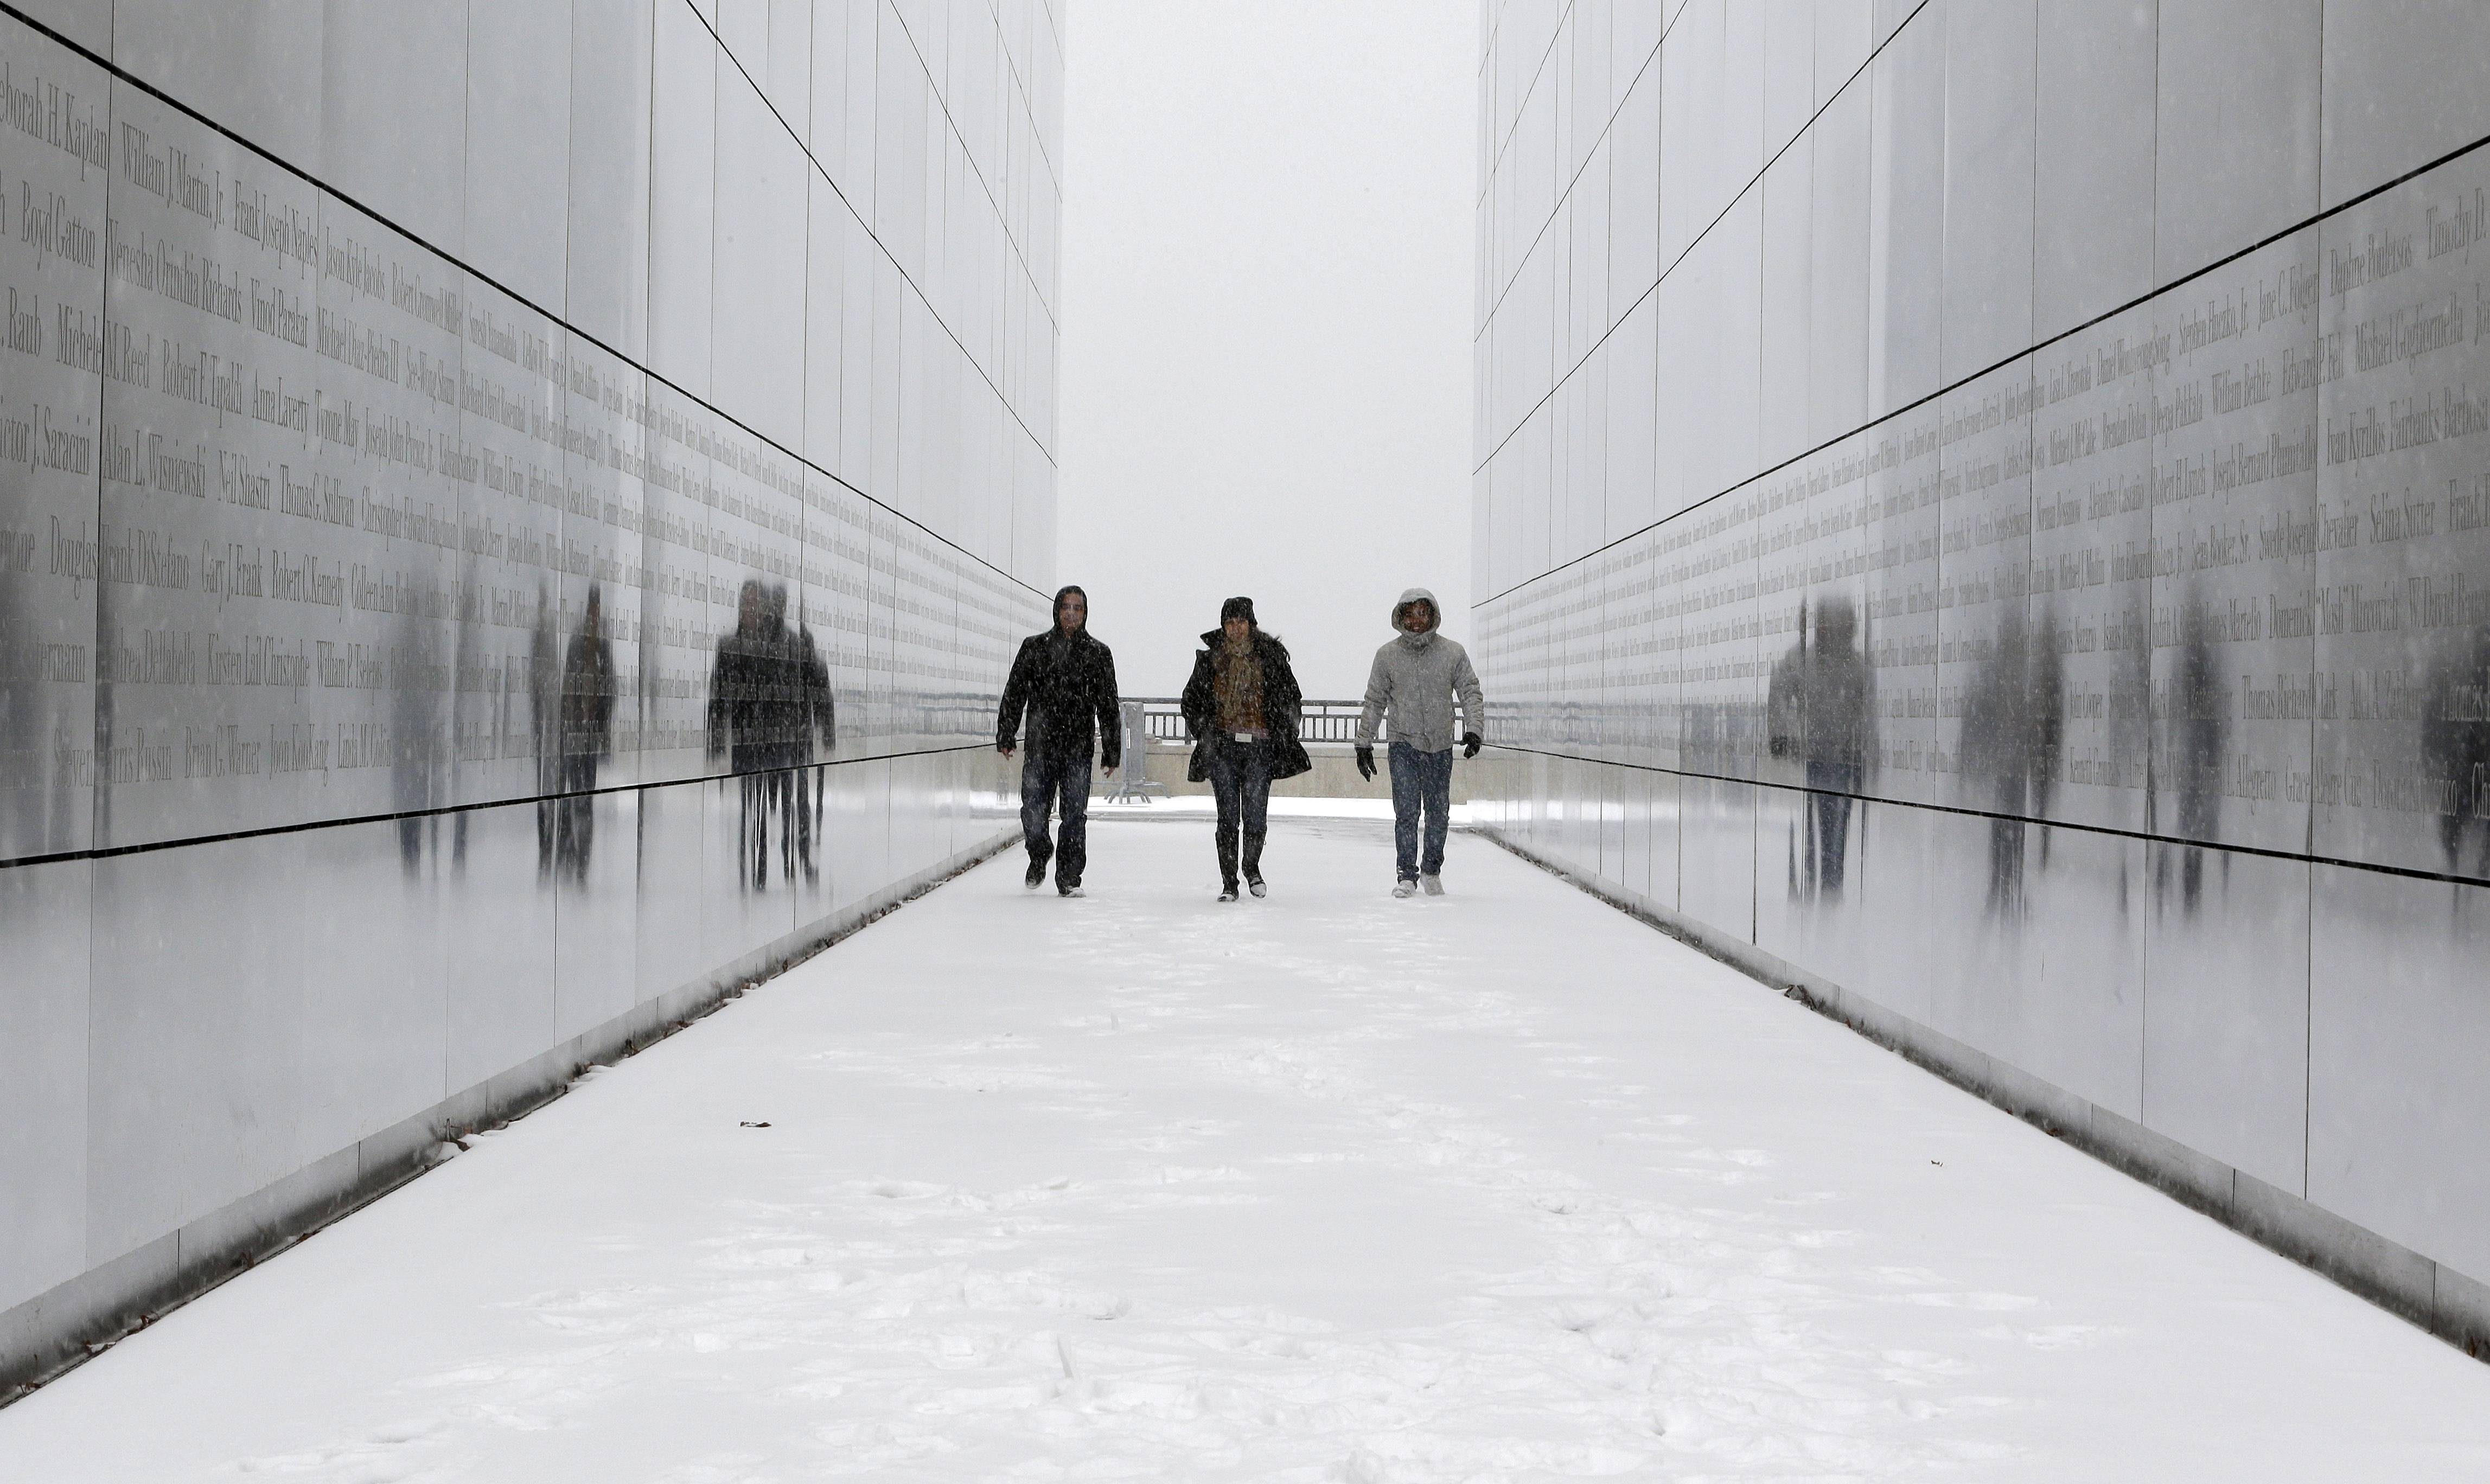 Tourists walk through the snow-covered Empty Sky Memorial at Liberty State Park in Jersey City, N.J. in January. Researchers who analyzed local climate trends and hospital records on millions of Americans say there may be a link between weather and the risk for stroke. Cold weather, high humidity and big daily temperature swings brought more stroke hospitalizations.